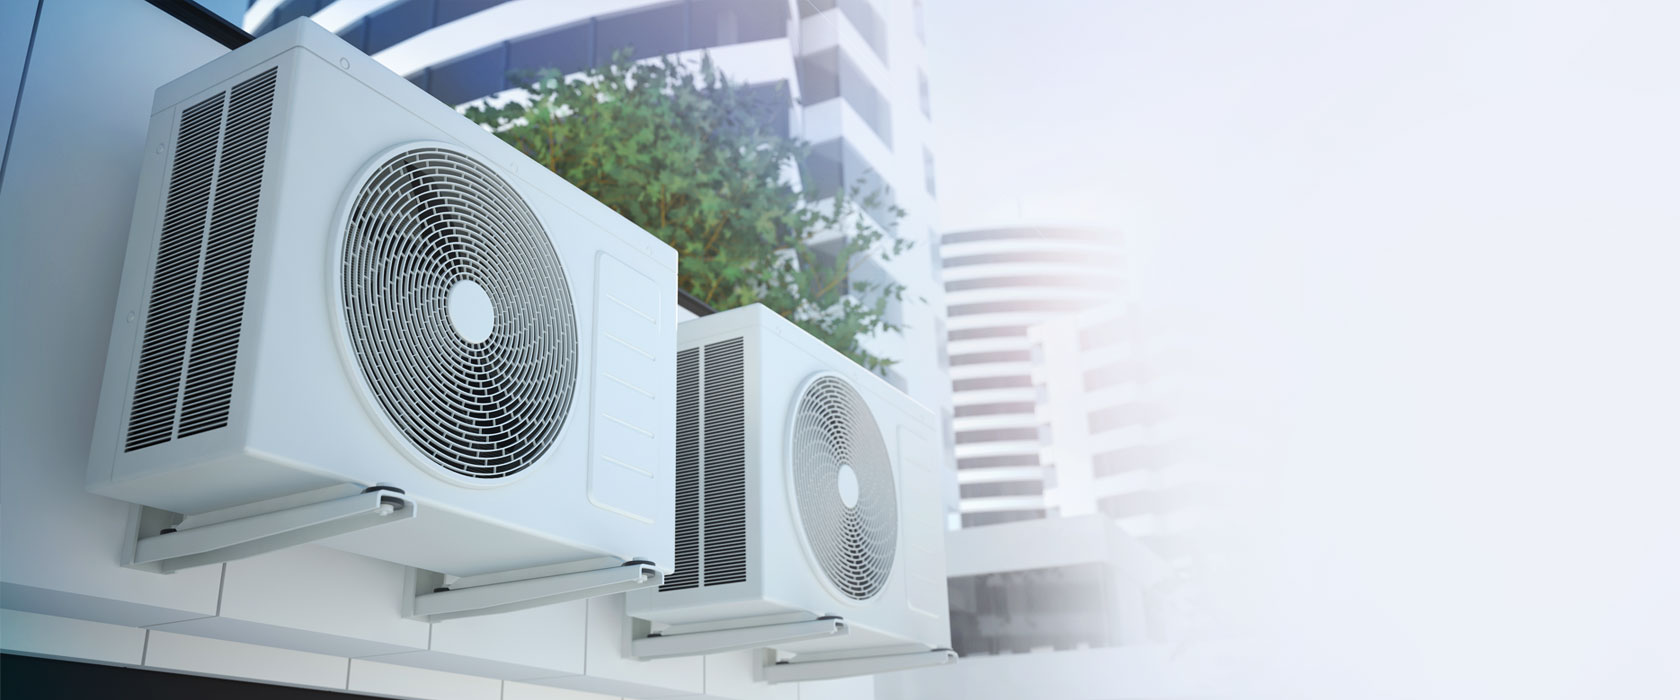 Cool your family during summer and warm up your home in winter with a new reverse cycle air conditioning system